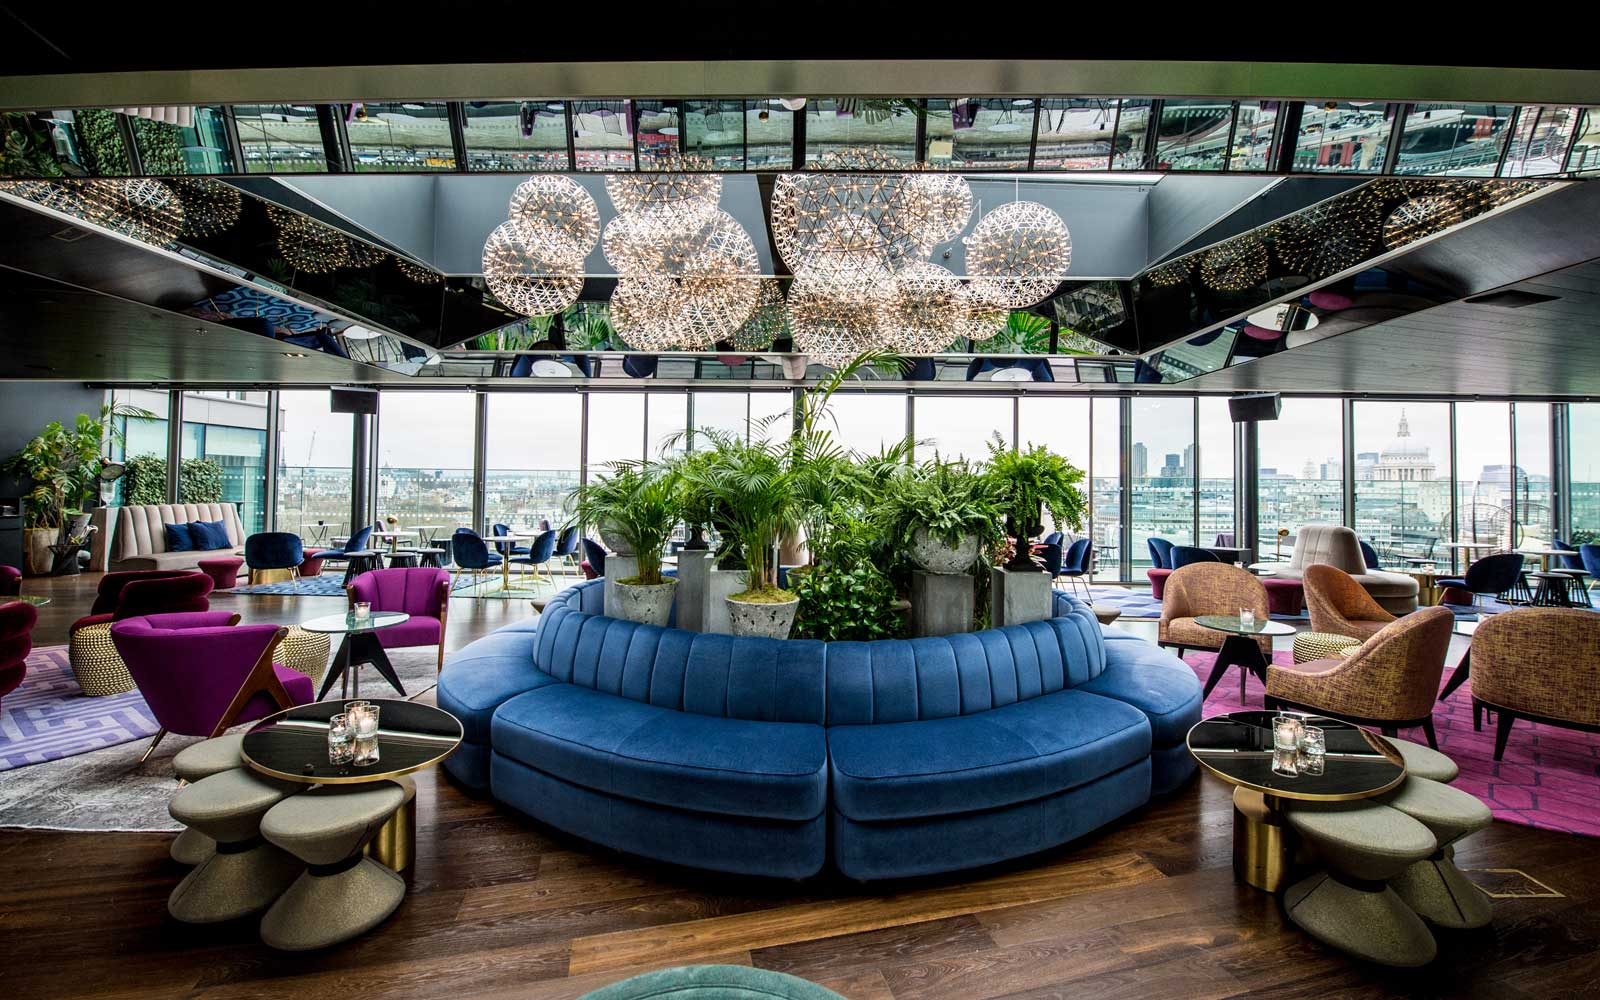 12th Knot Bar at Sea Containers London